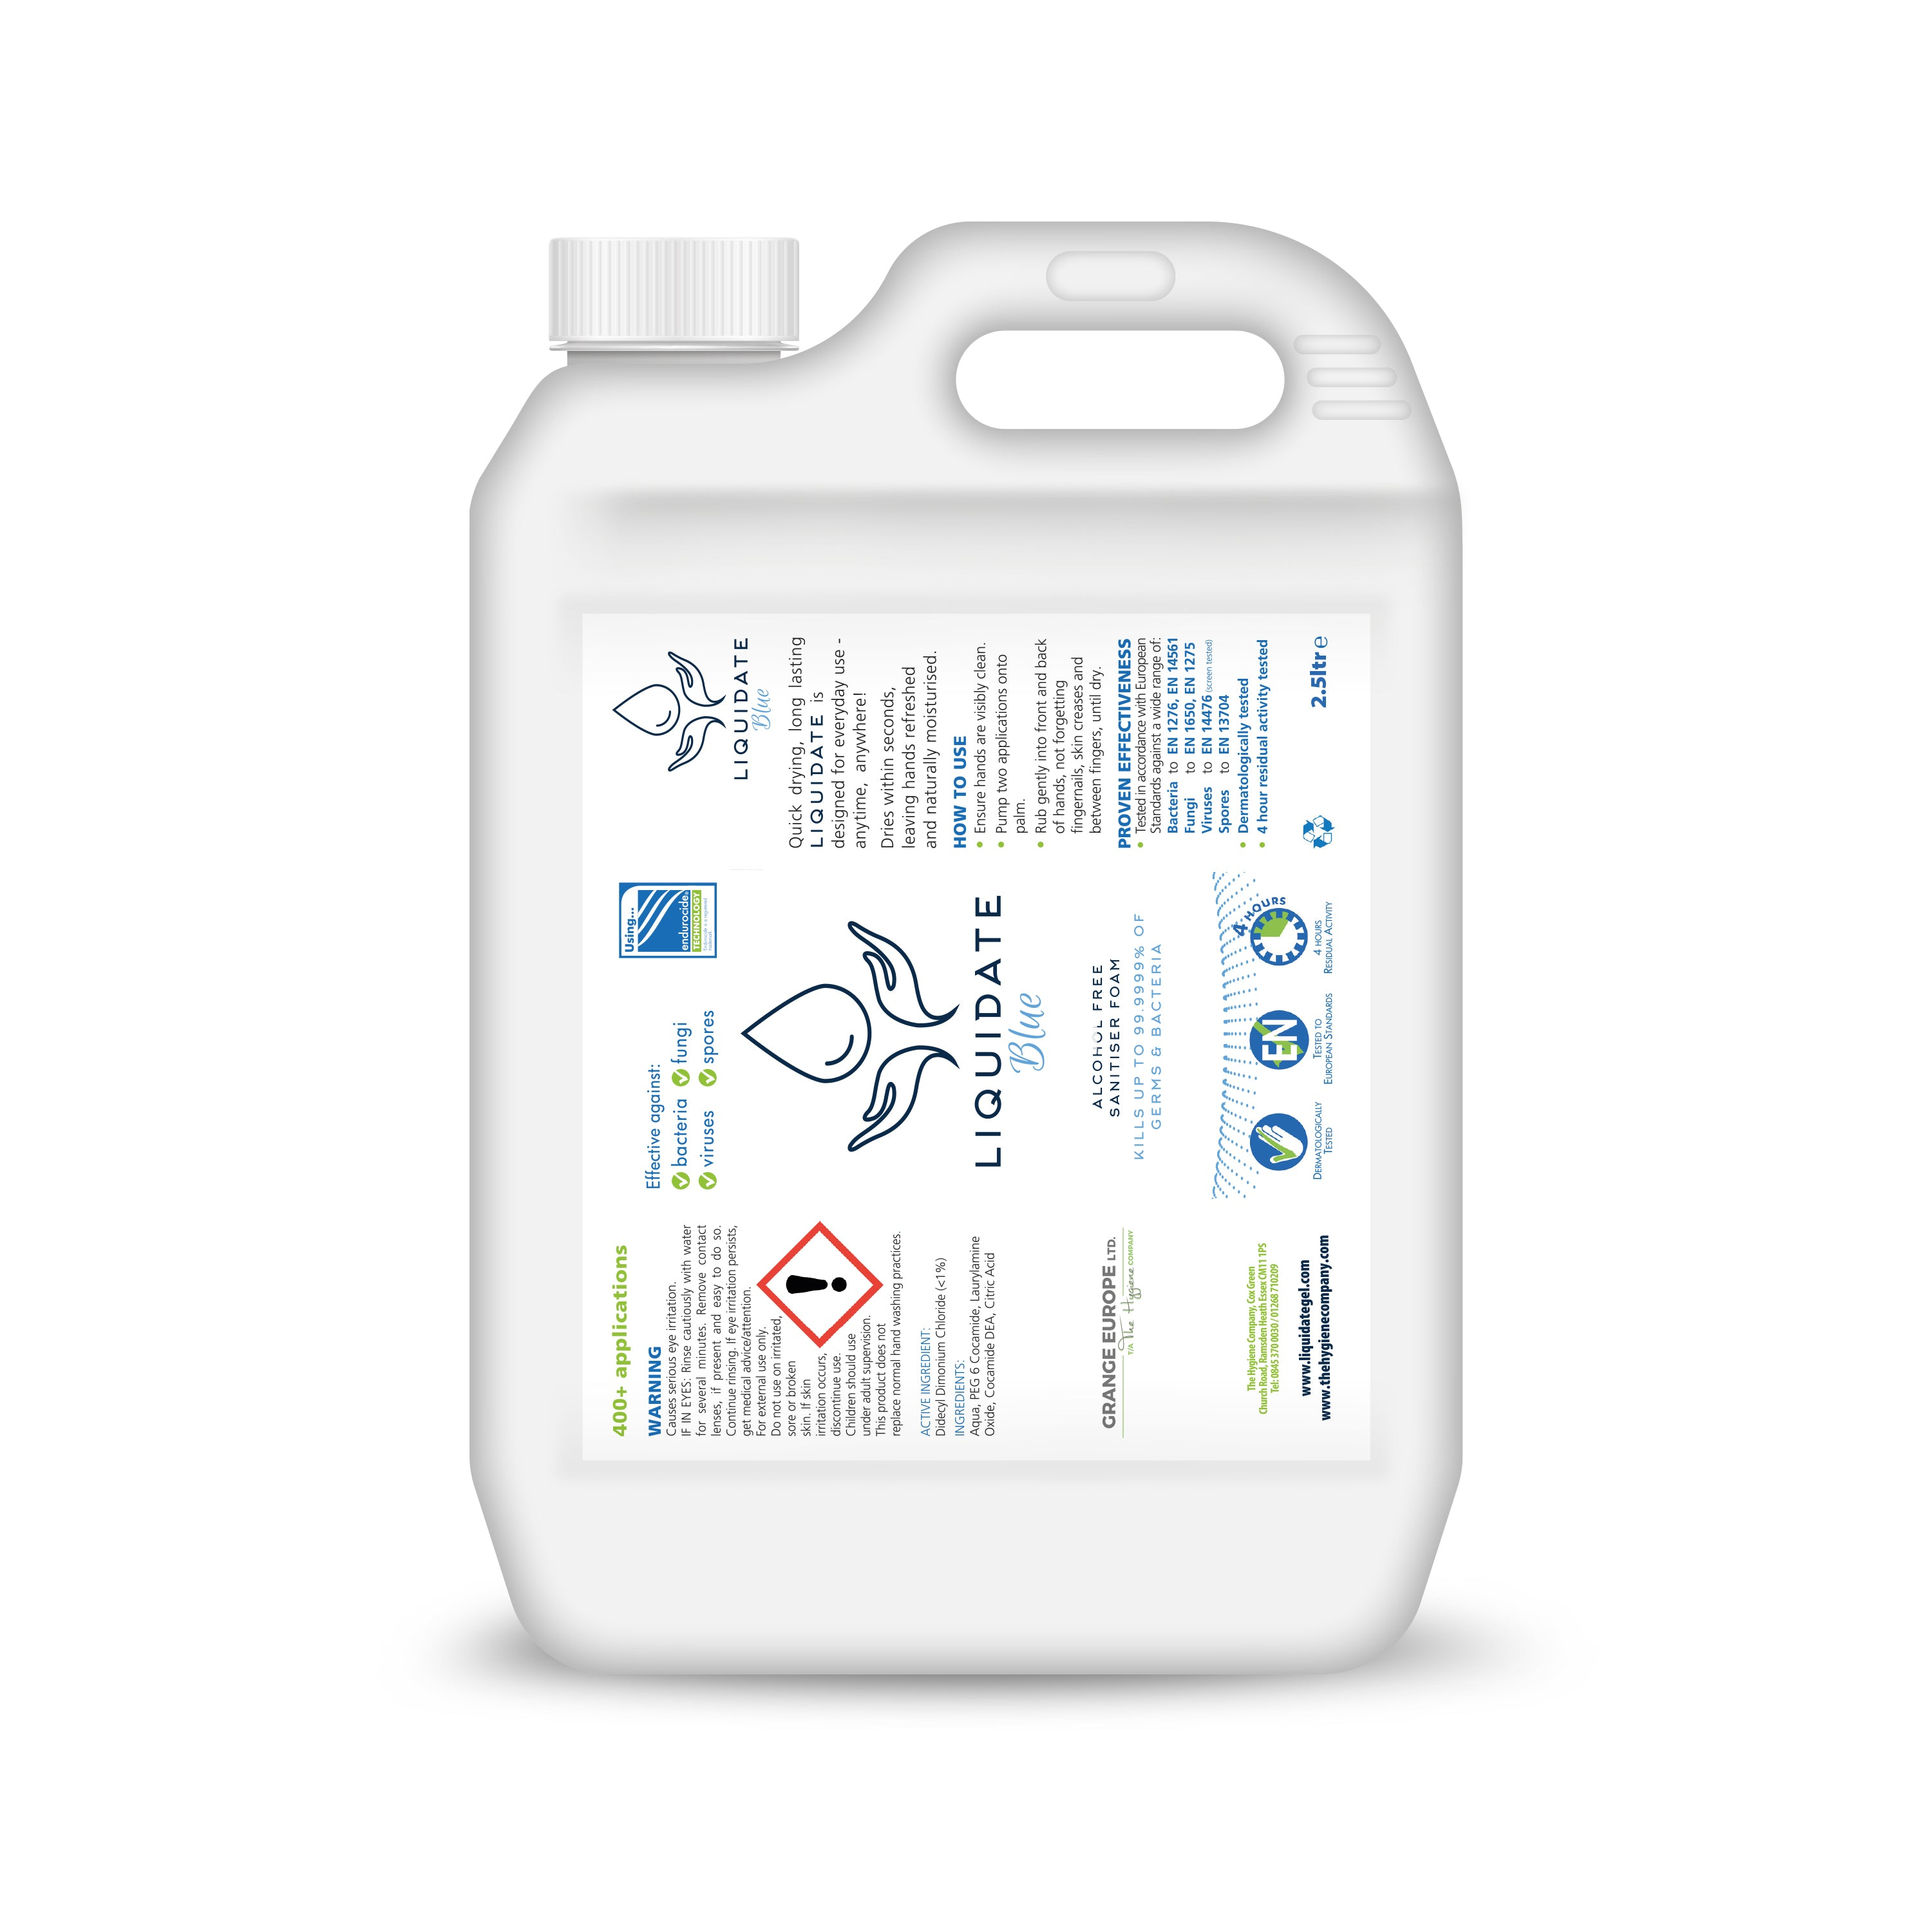 2.5 litres - Liquidate Hand sanitiser Refill Containers (2 per box)